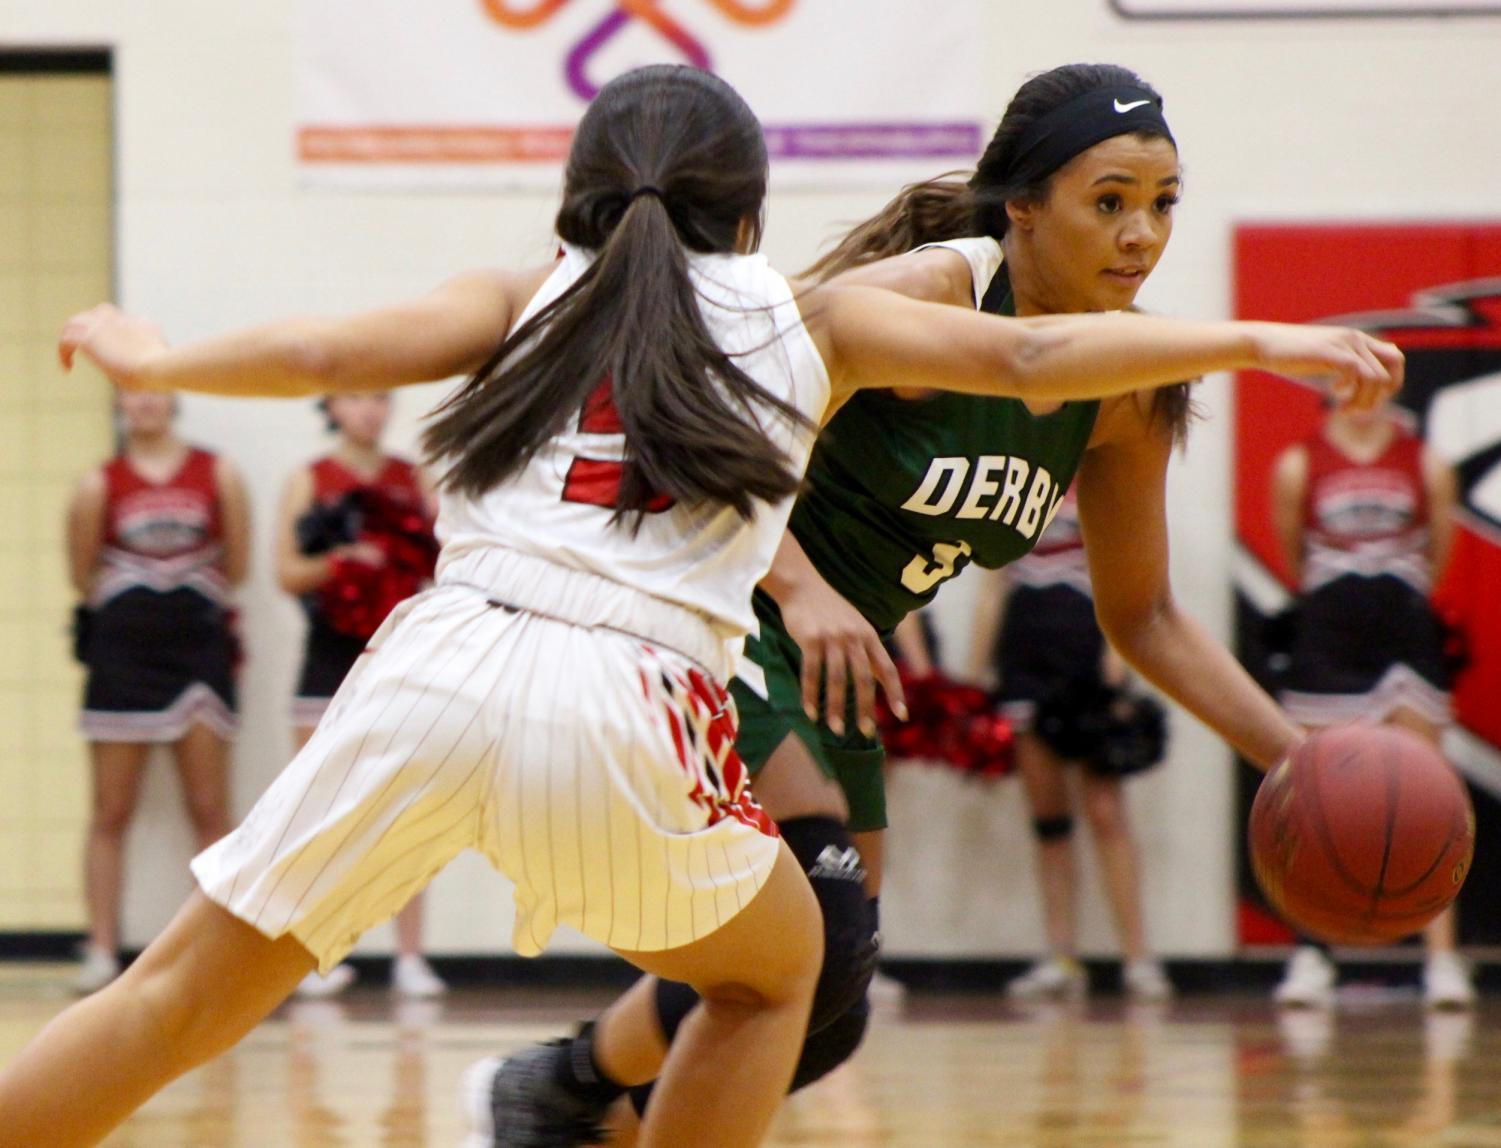 Junior+Aliyah+Meyers+dribbles+the+ball+out+of+her+opponents+reach.